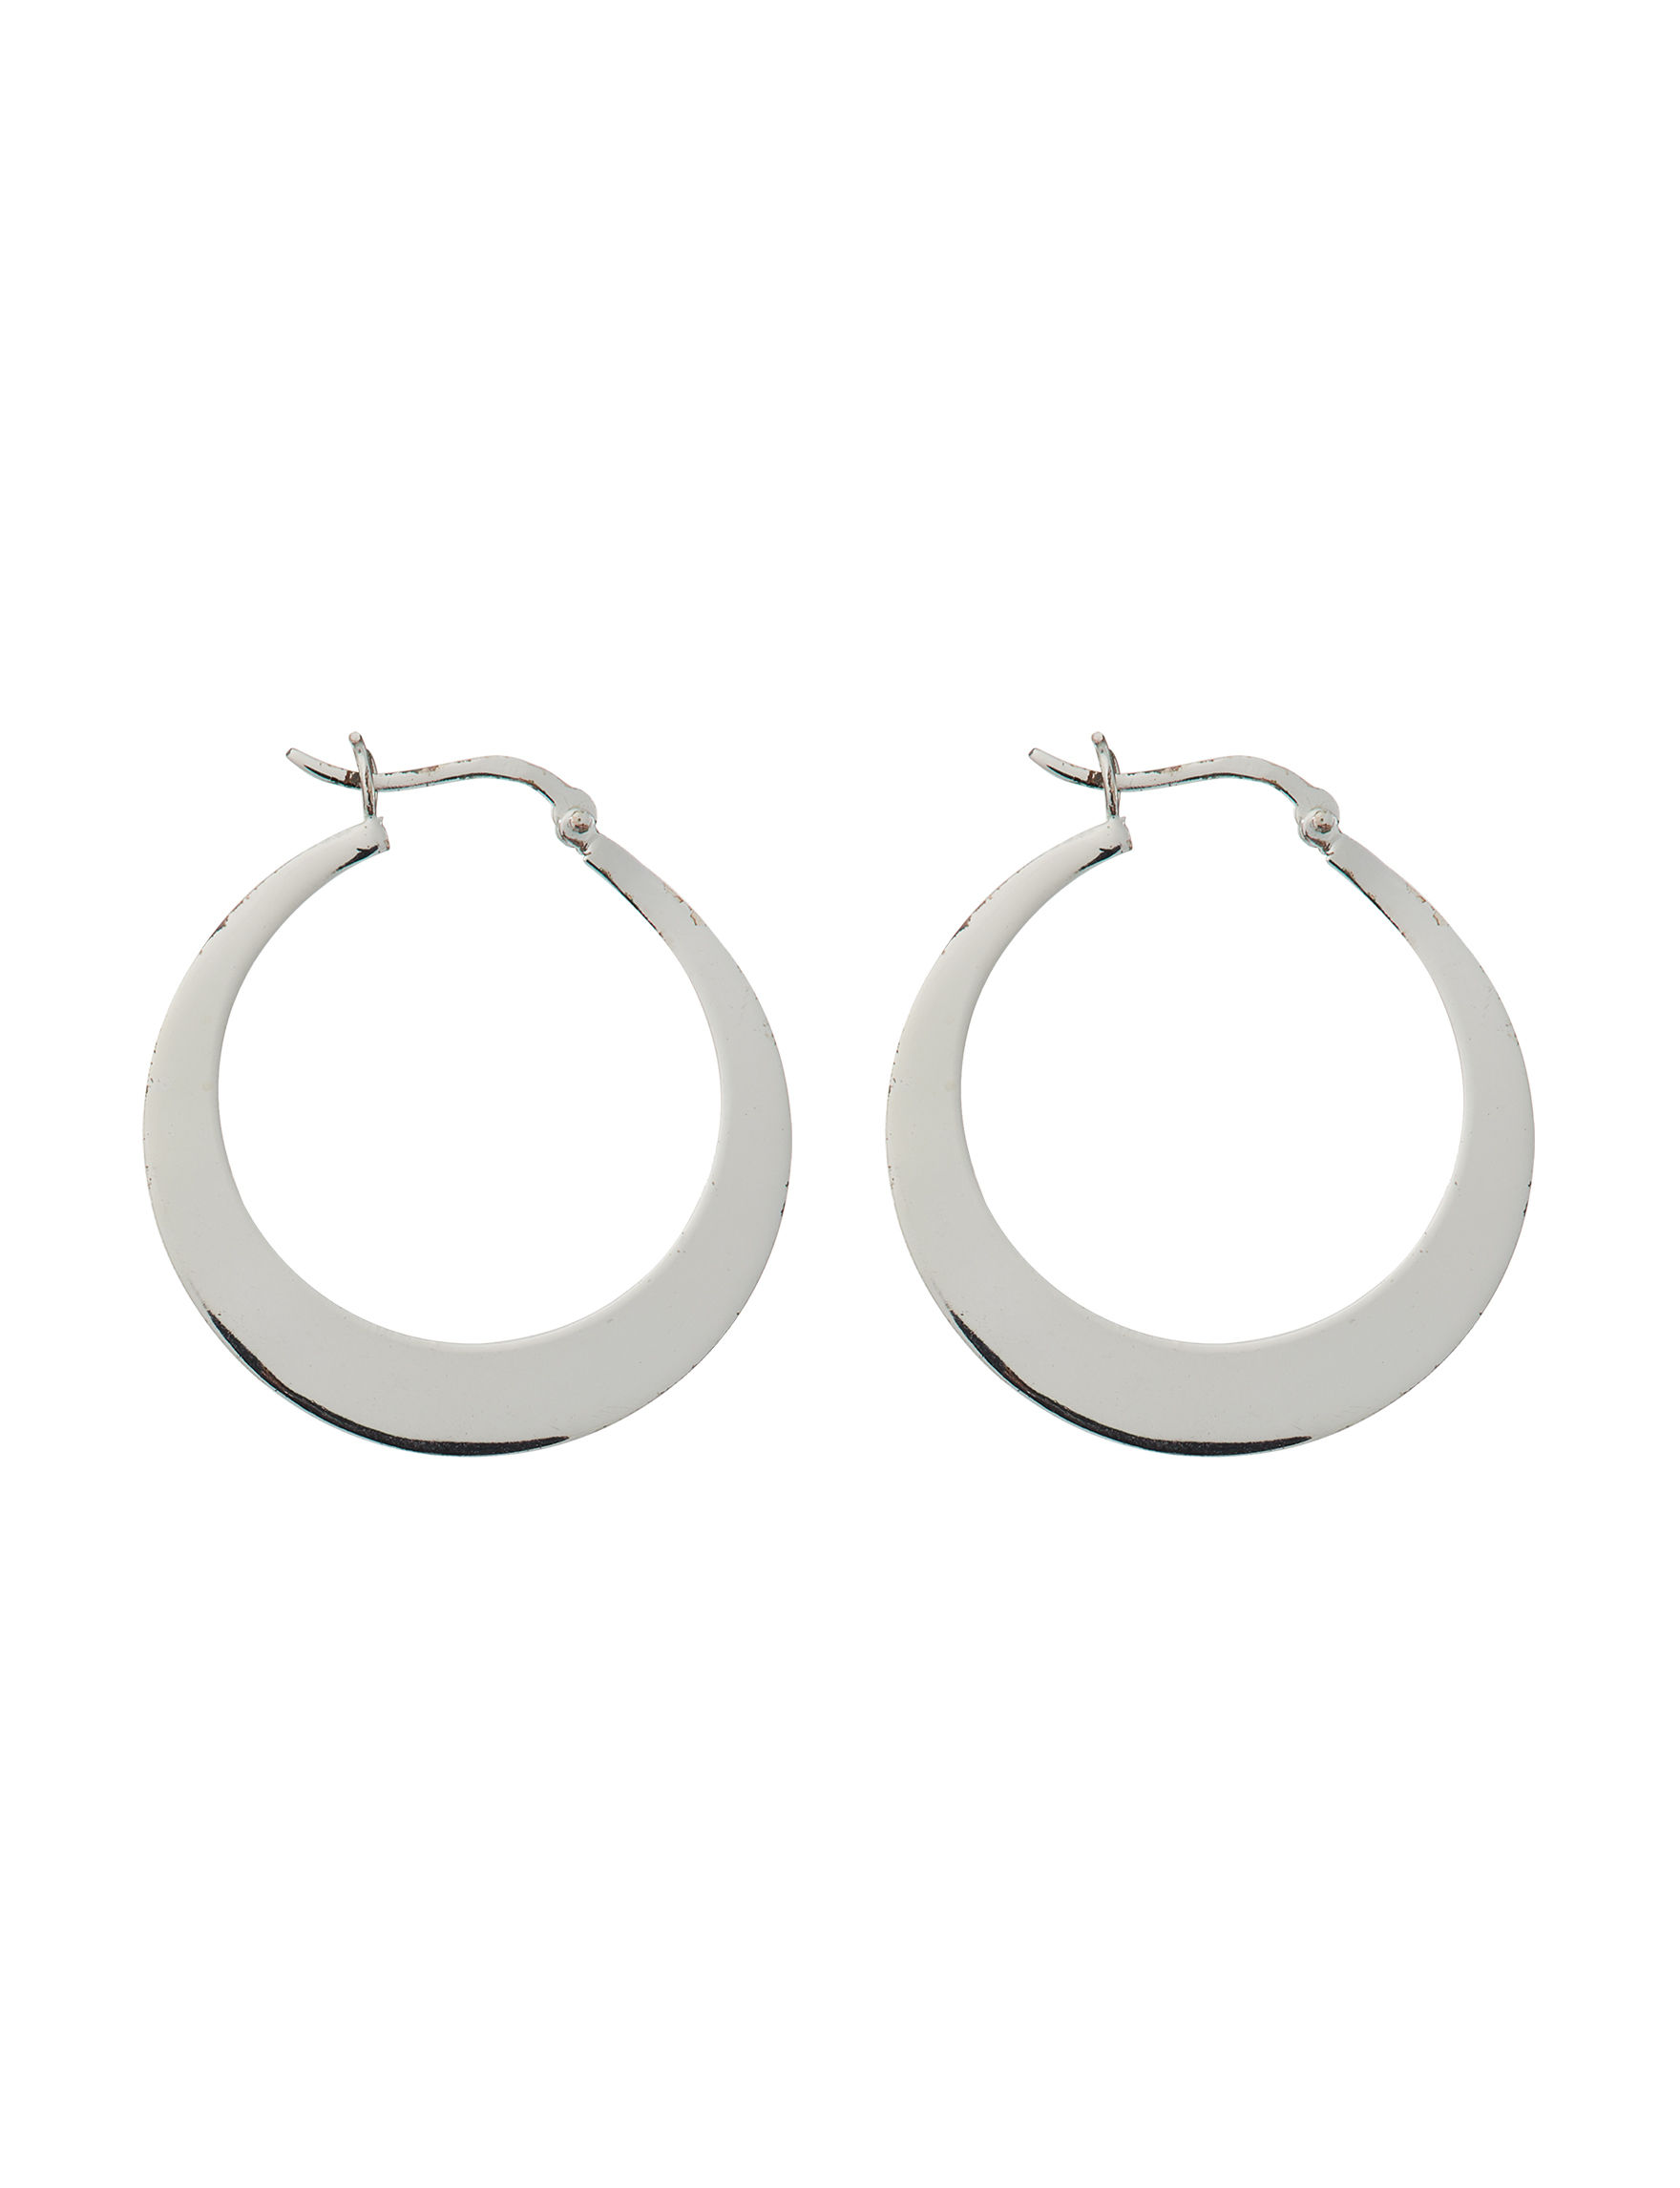 Marsala Fine Silver Plated Hoops Earrings Fine Jewelry